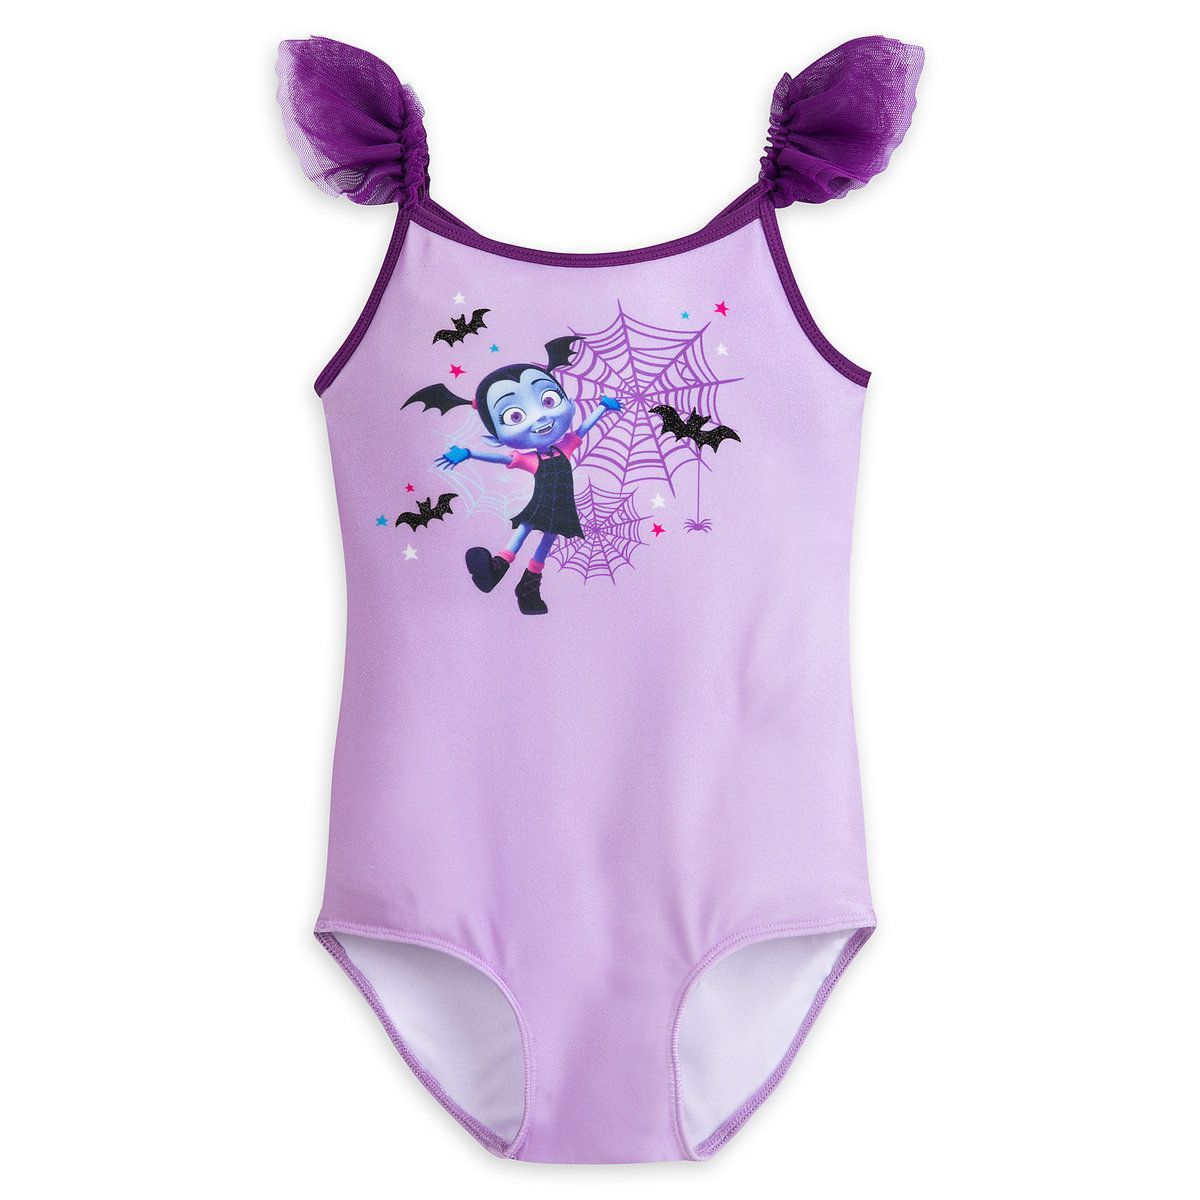 2a590920c29 Product Image of Vampirina Leotard and Tutu Set for Girls   2 ...